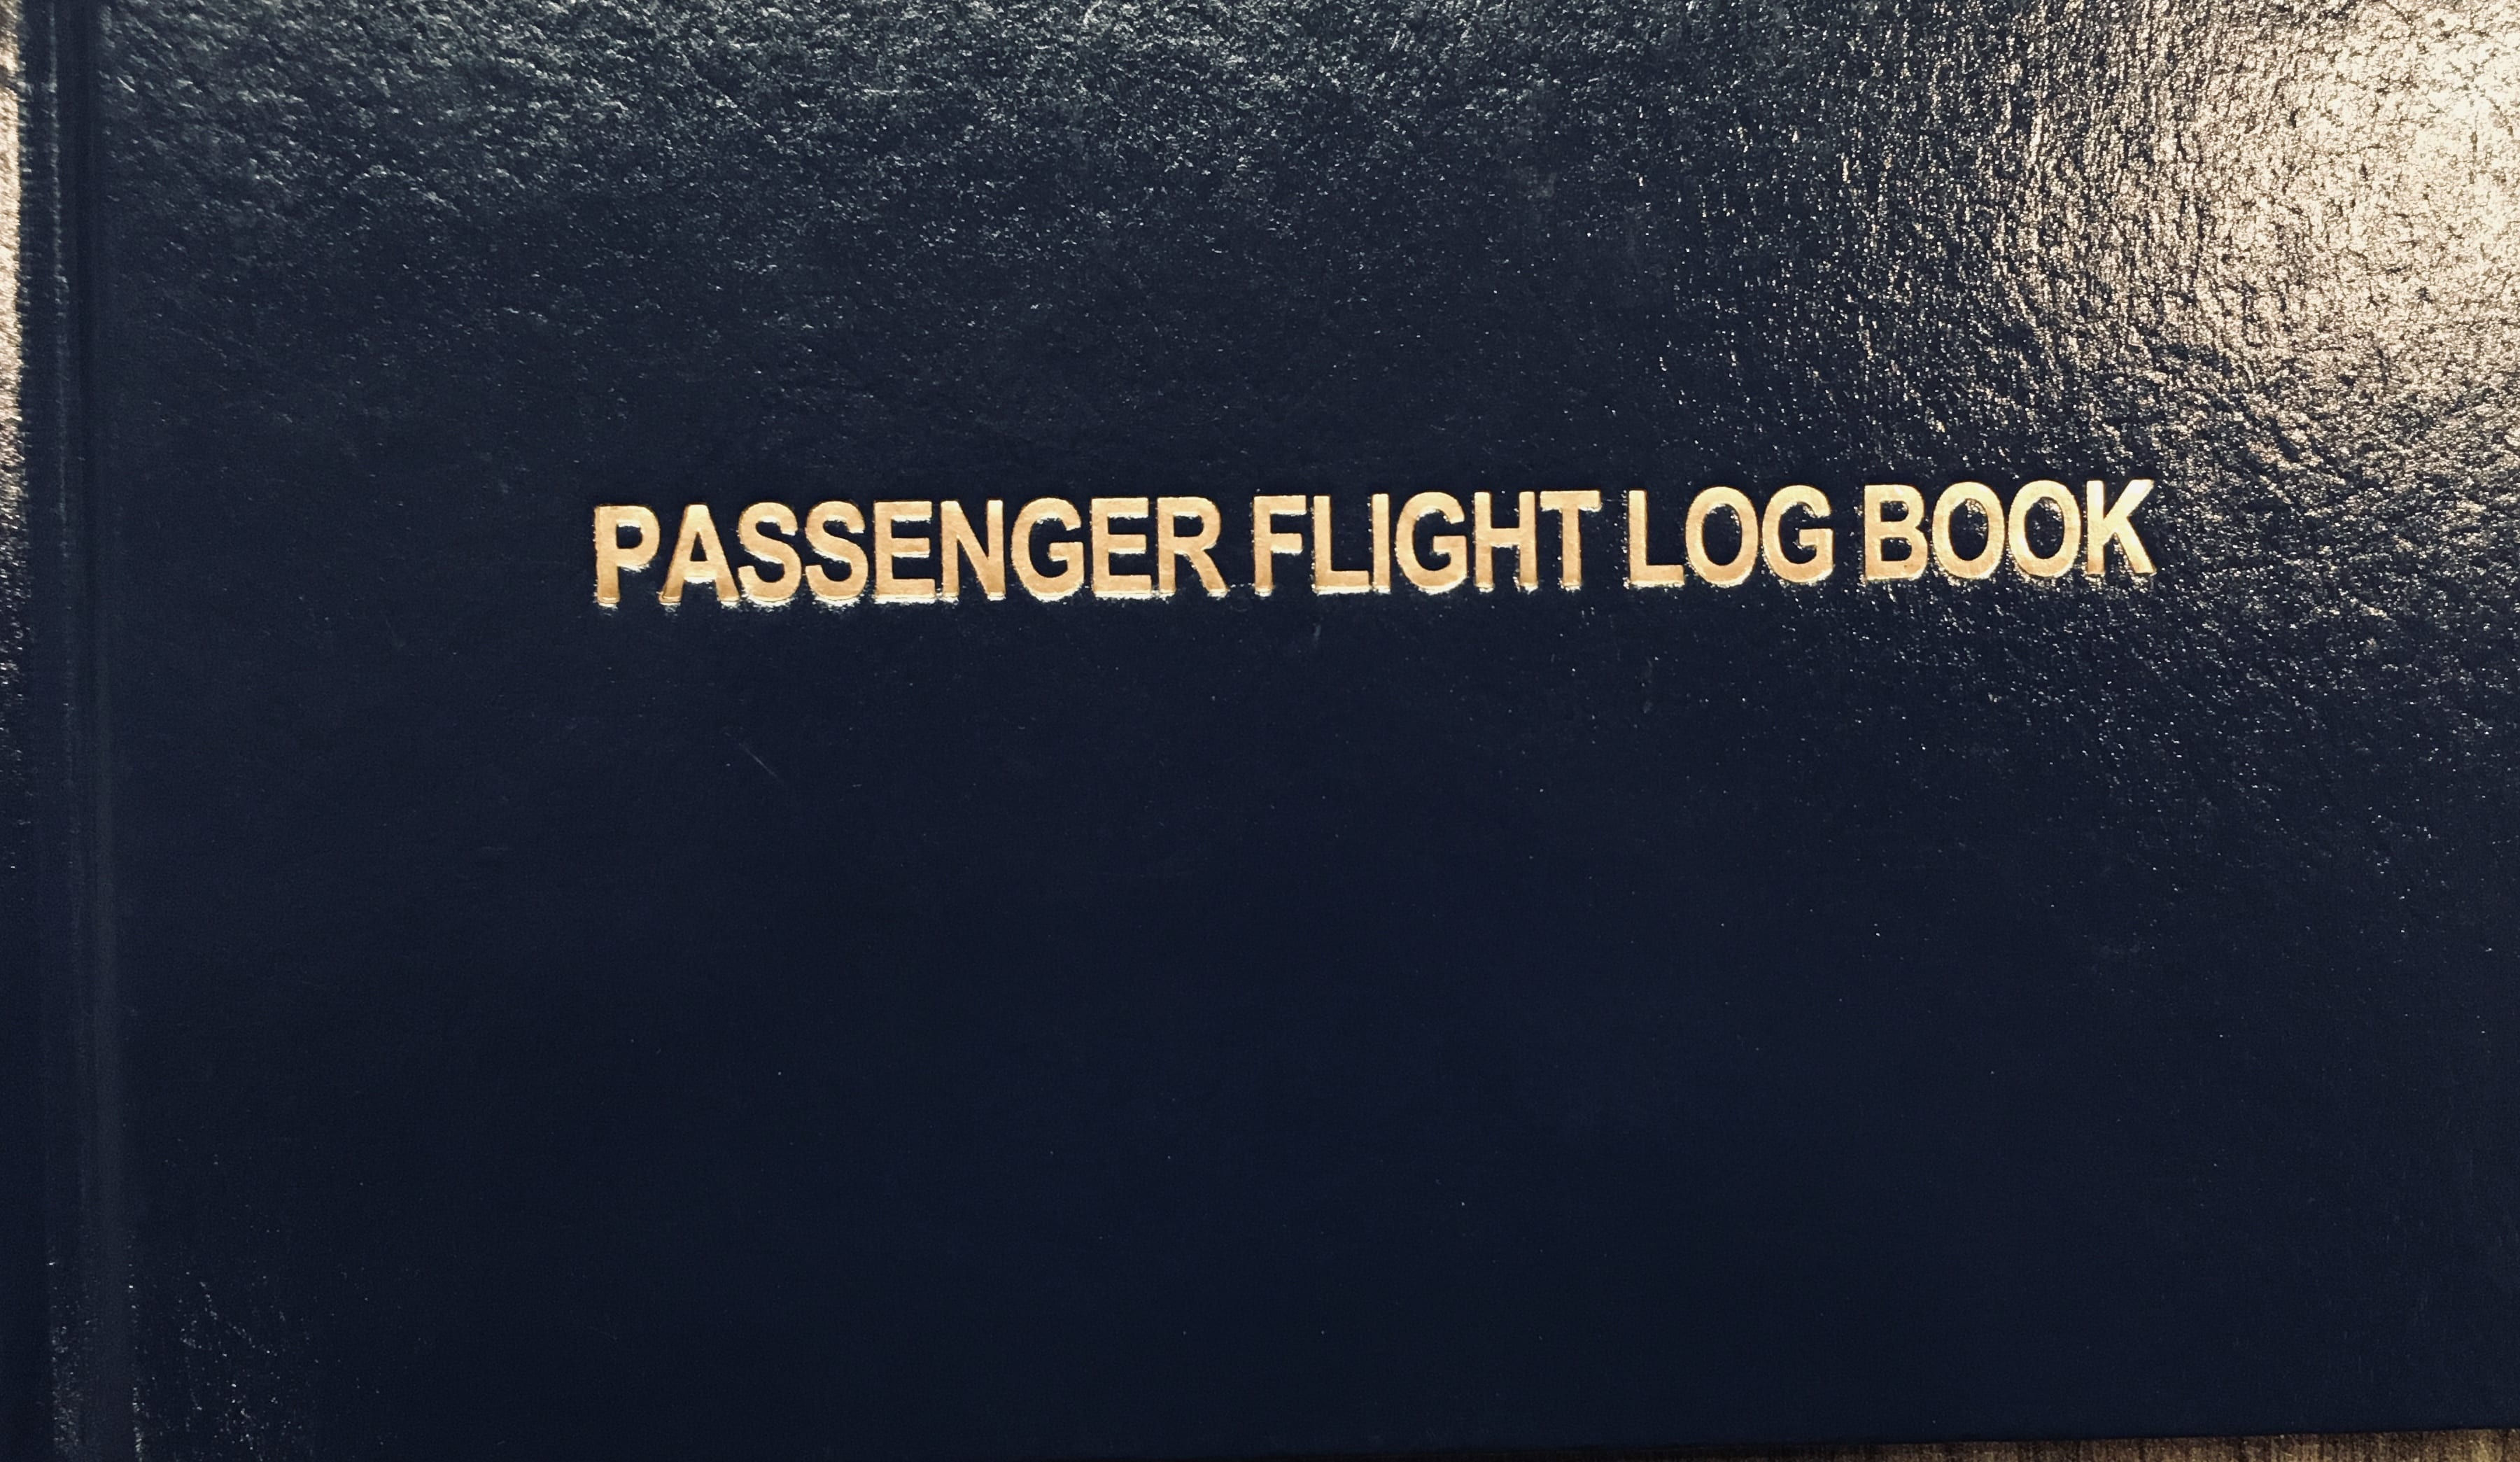 Passenger Flight Log Book